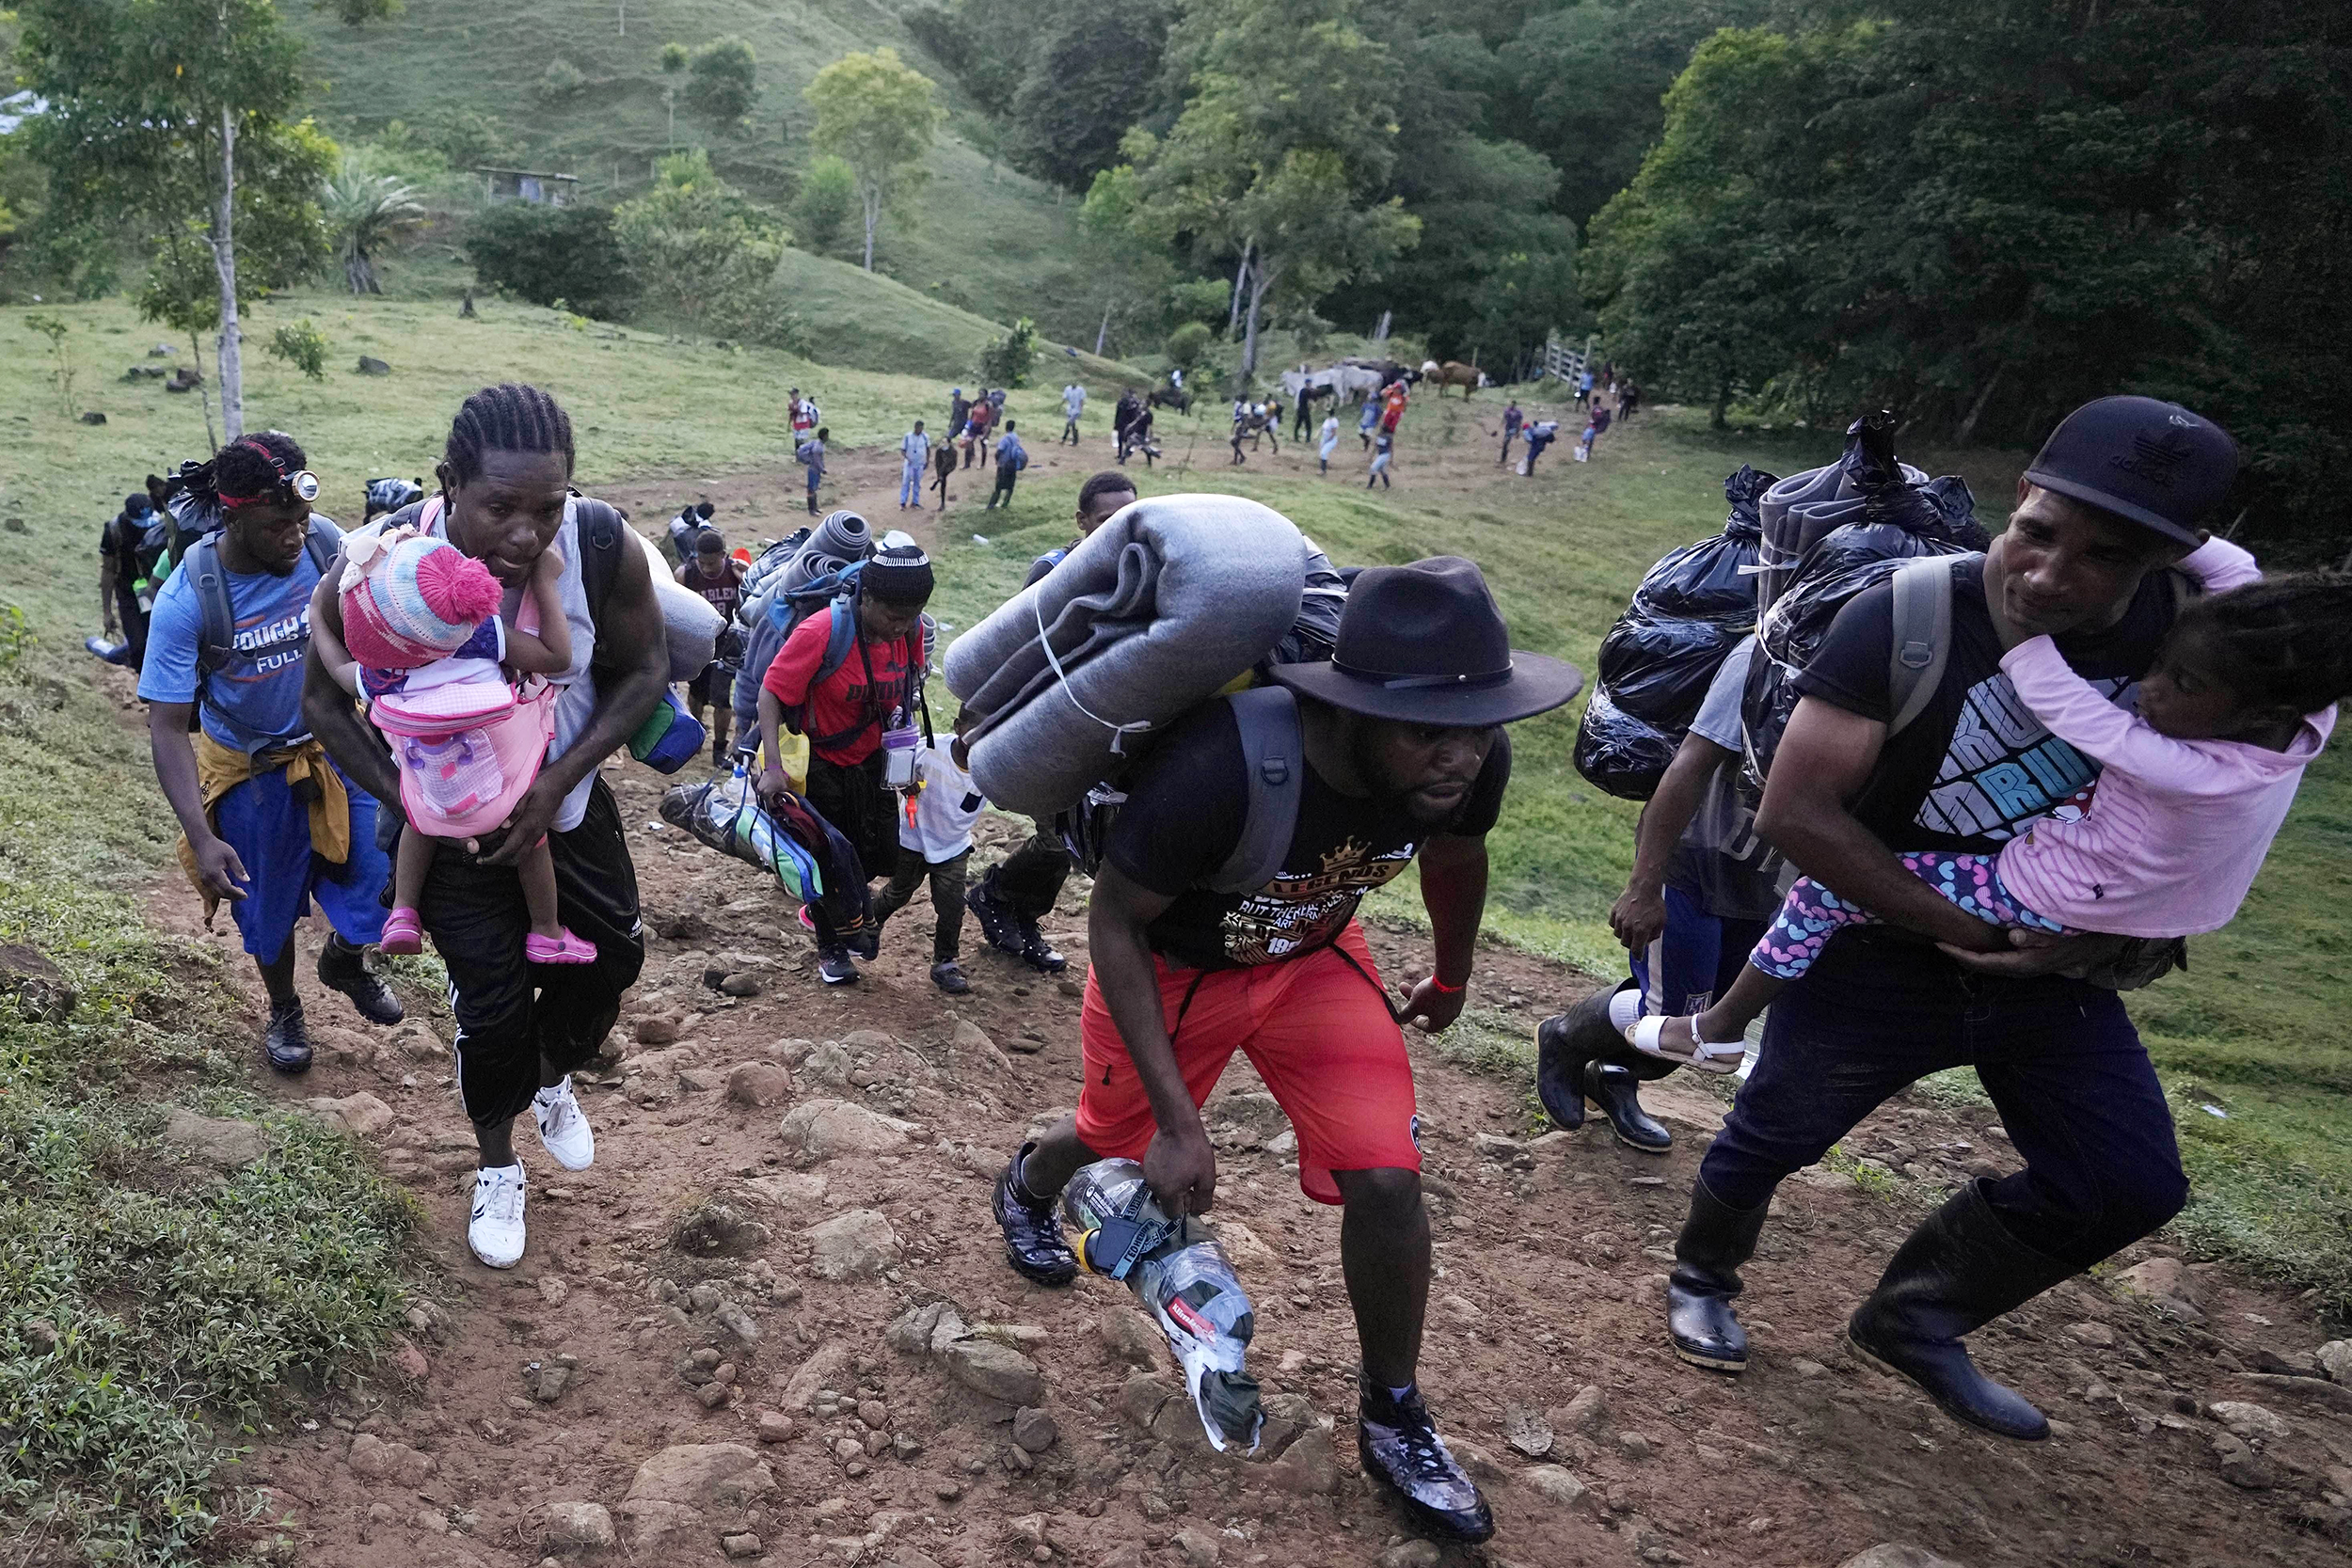 More than 20,000 Haitians are gathered in Colombia for possible migration to U.S.